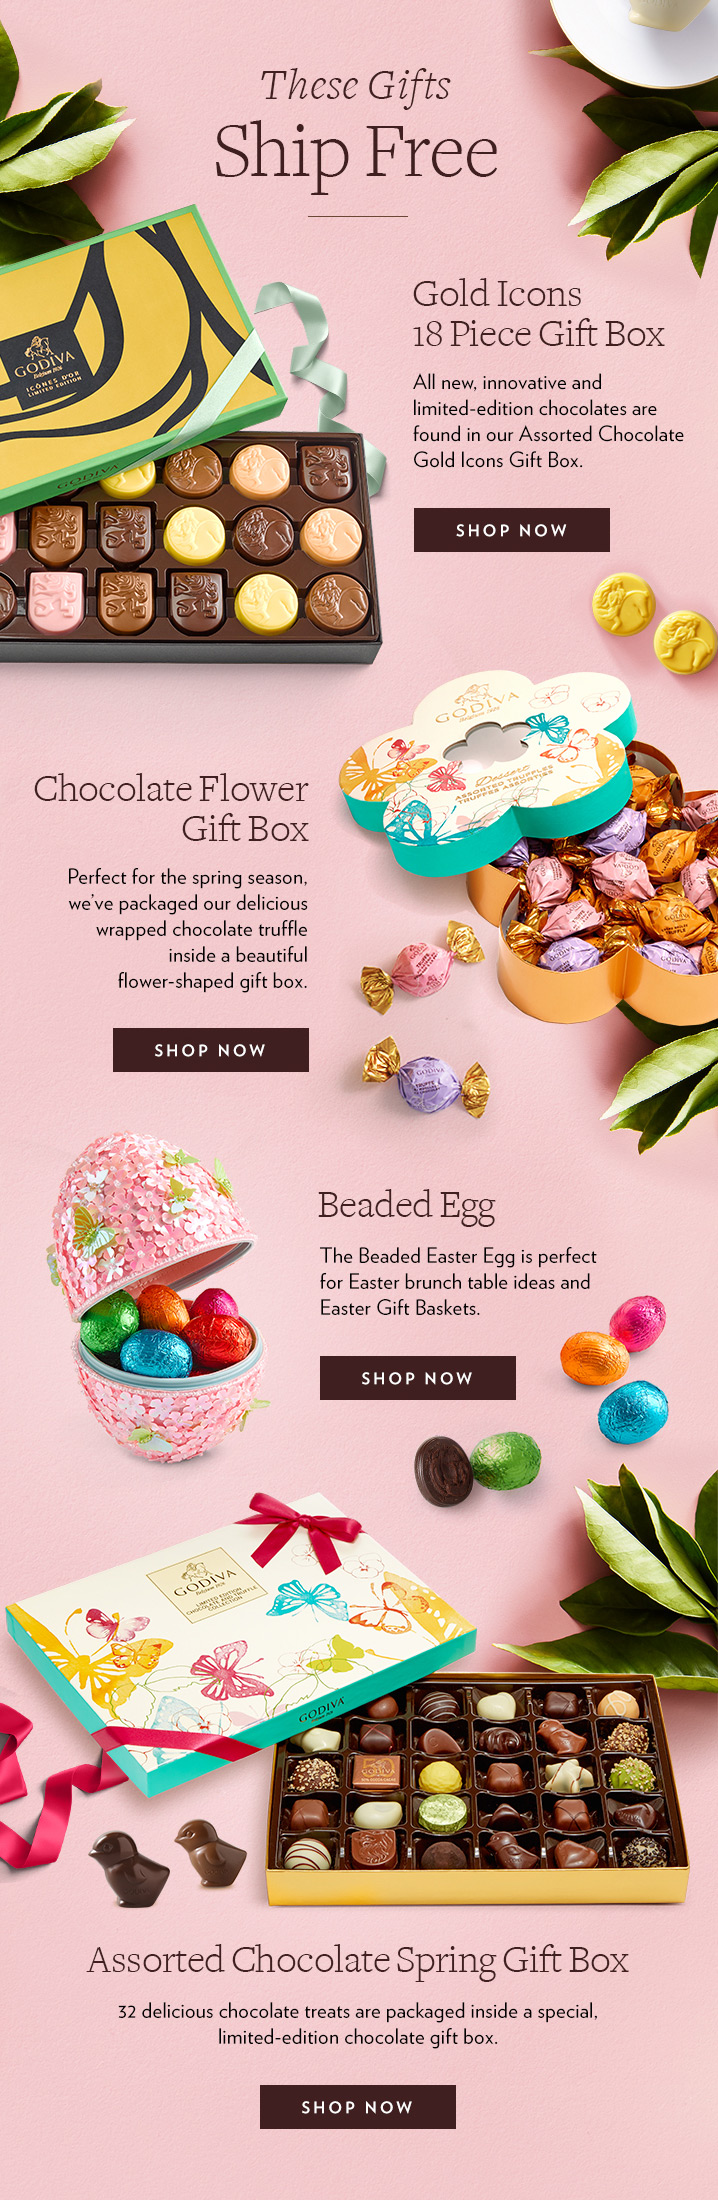 Godiva last day free shipping on easter gifts gift just for free standard shipping on gold icon 18 pc and select easter gifts negle